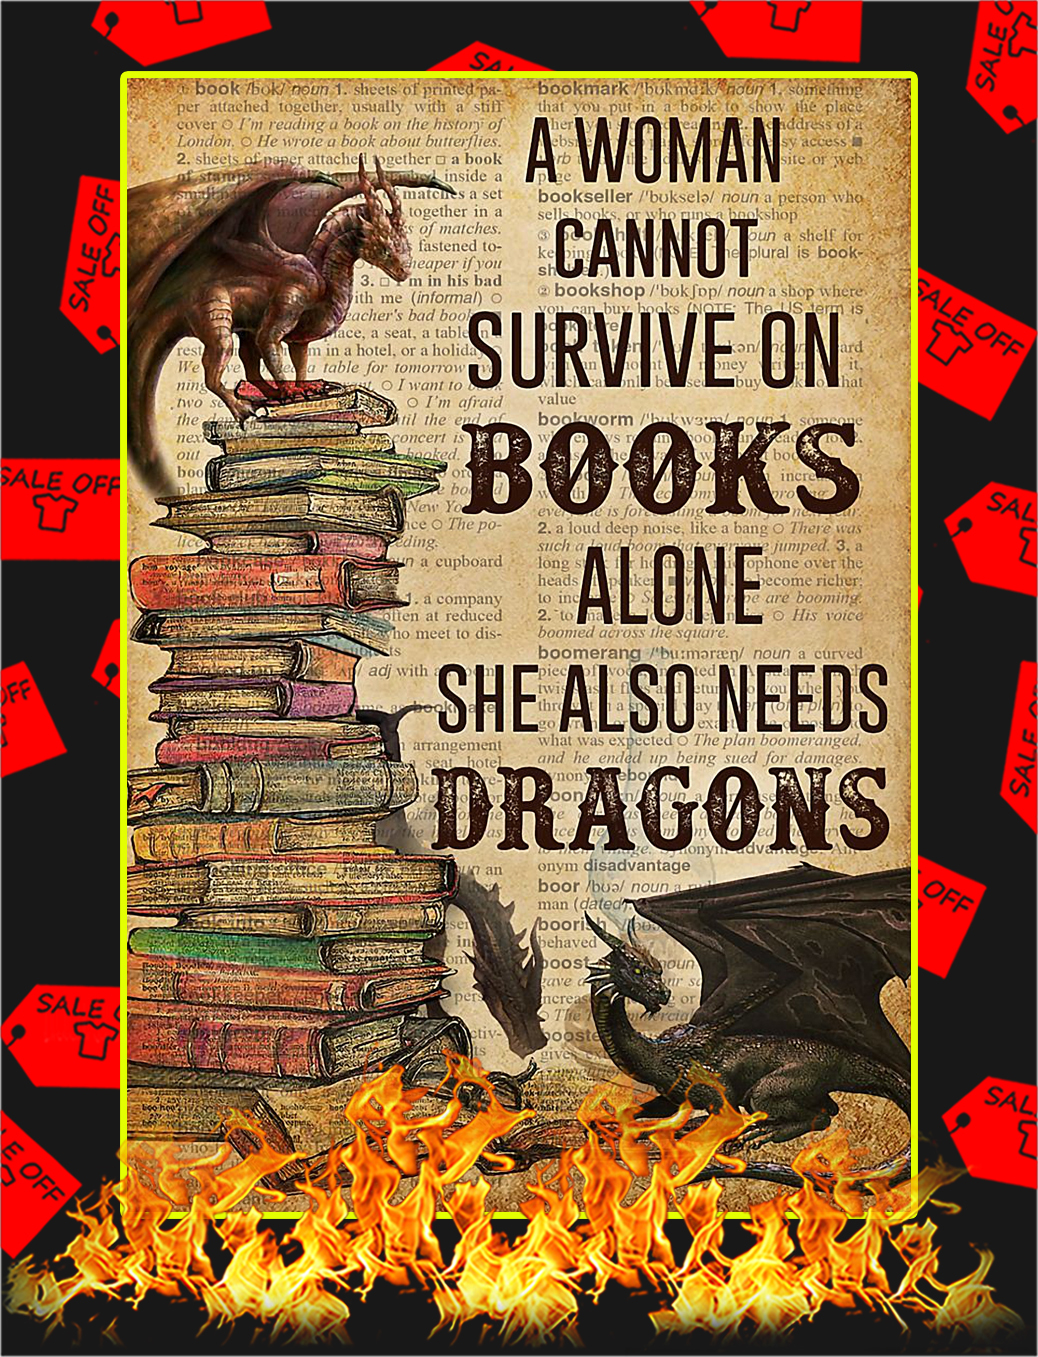 A woman cannot survive on books alone needs dragons poster